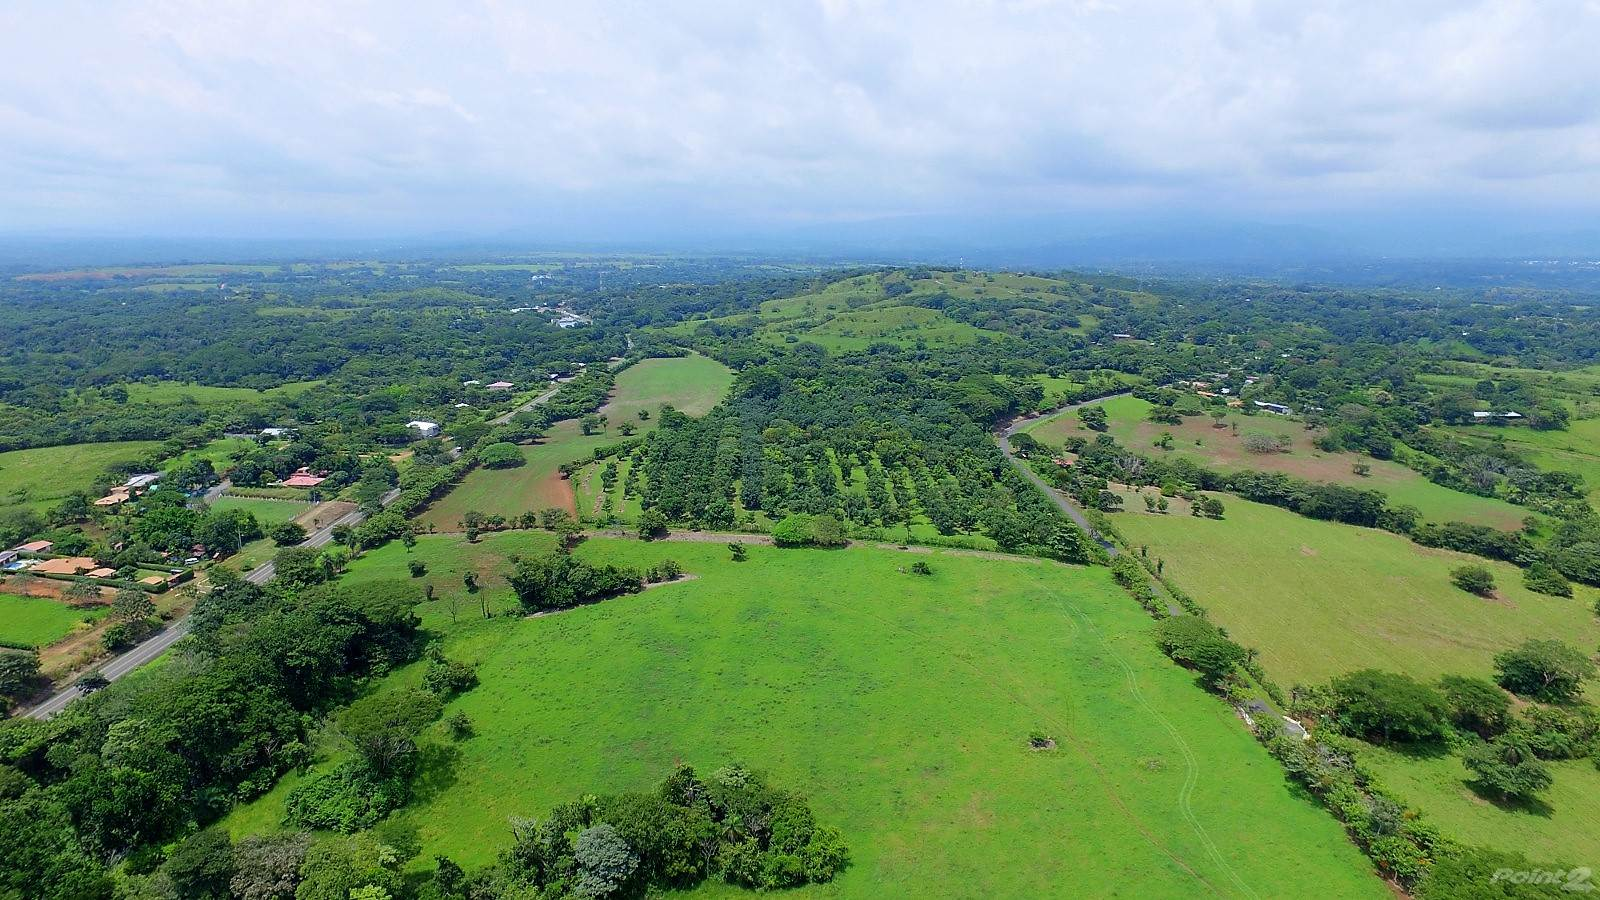 Fazendas & Granja à venda em Land Investment close to future Int'l airport Orotina @ only 30min drive from Jaco, Orotina, Alajuela ,23001  , Costa Rica